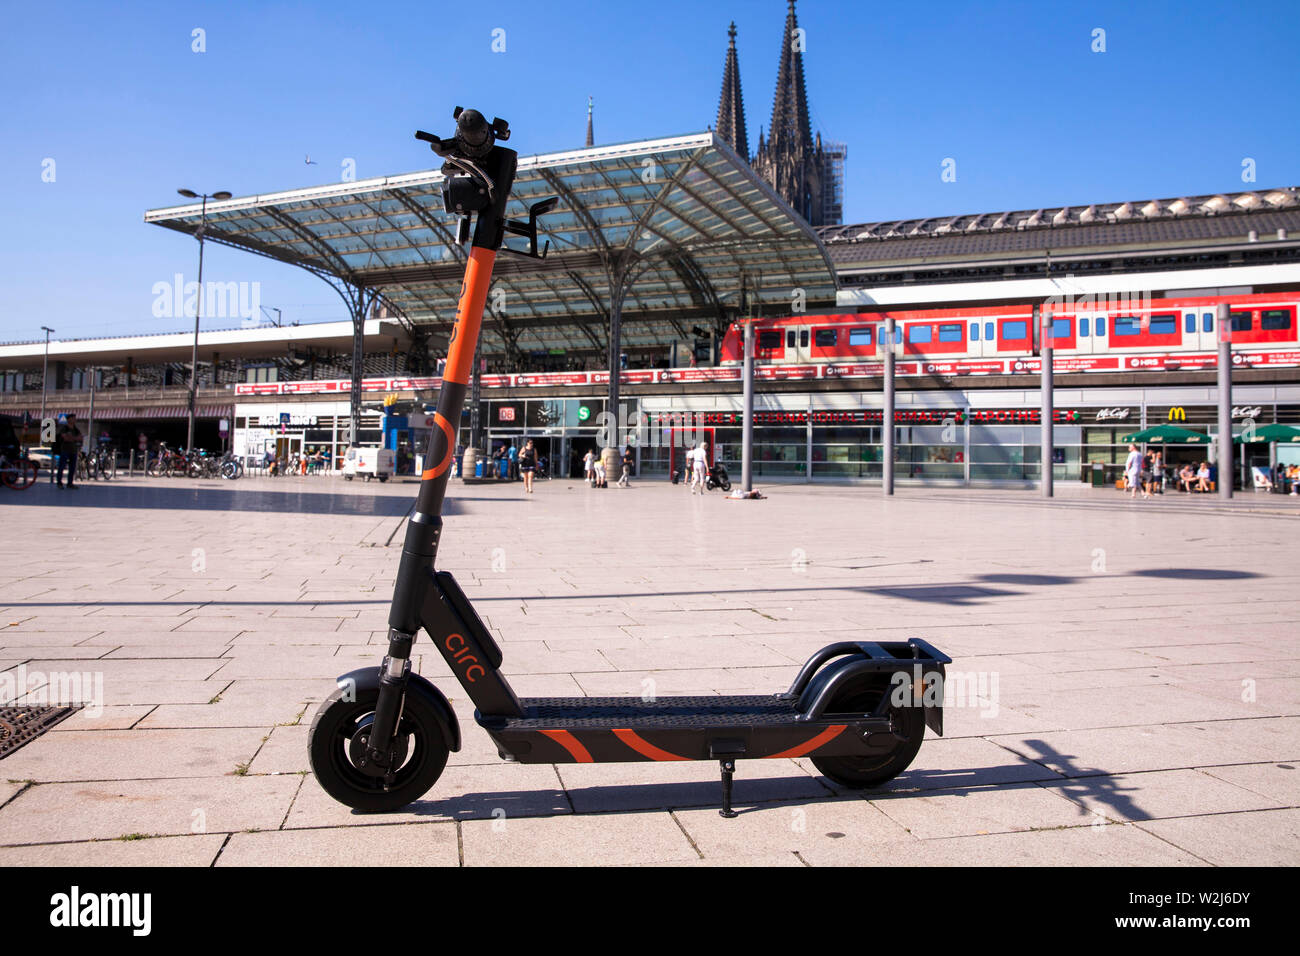 Circ electric scooters for rental at the main station, the cathedral, Cologne, Germany.  Circ Elektroscooter zum mieten am Hauptbahnhof, der Dom, Koel Stock Photo